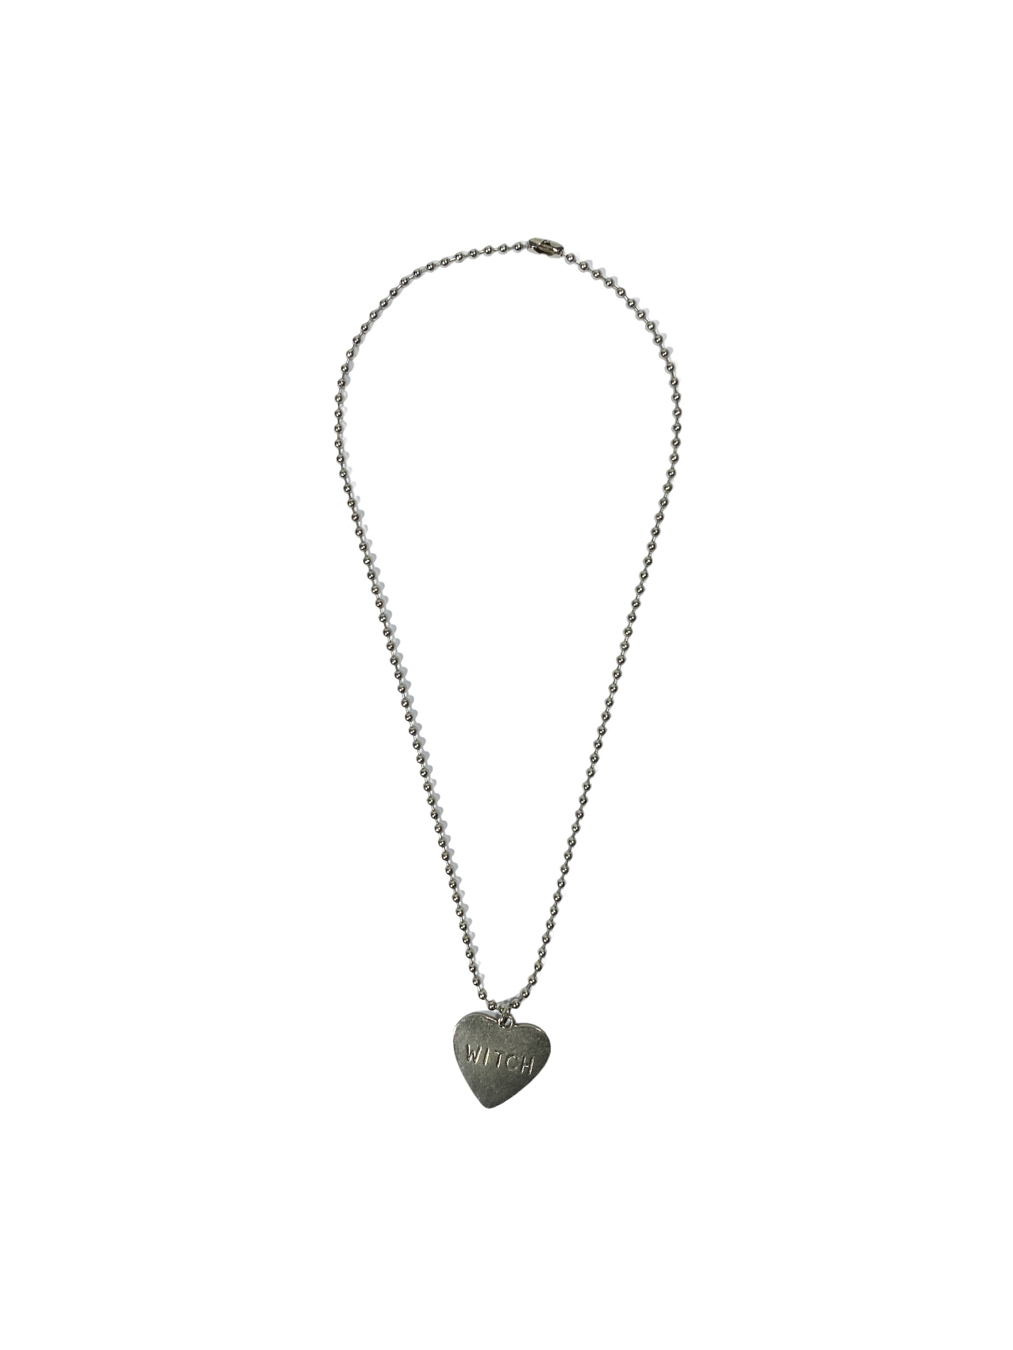 Necklace (WITCH)